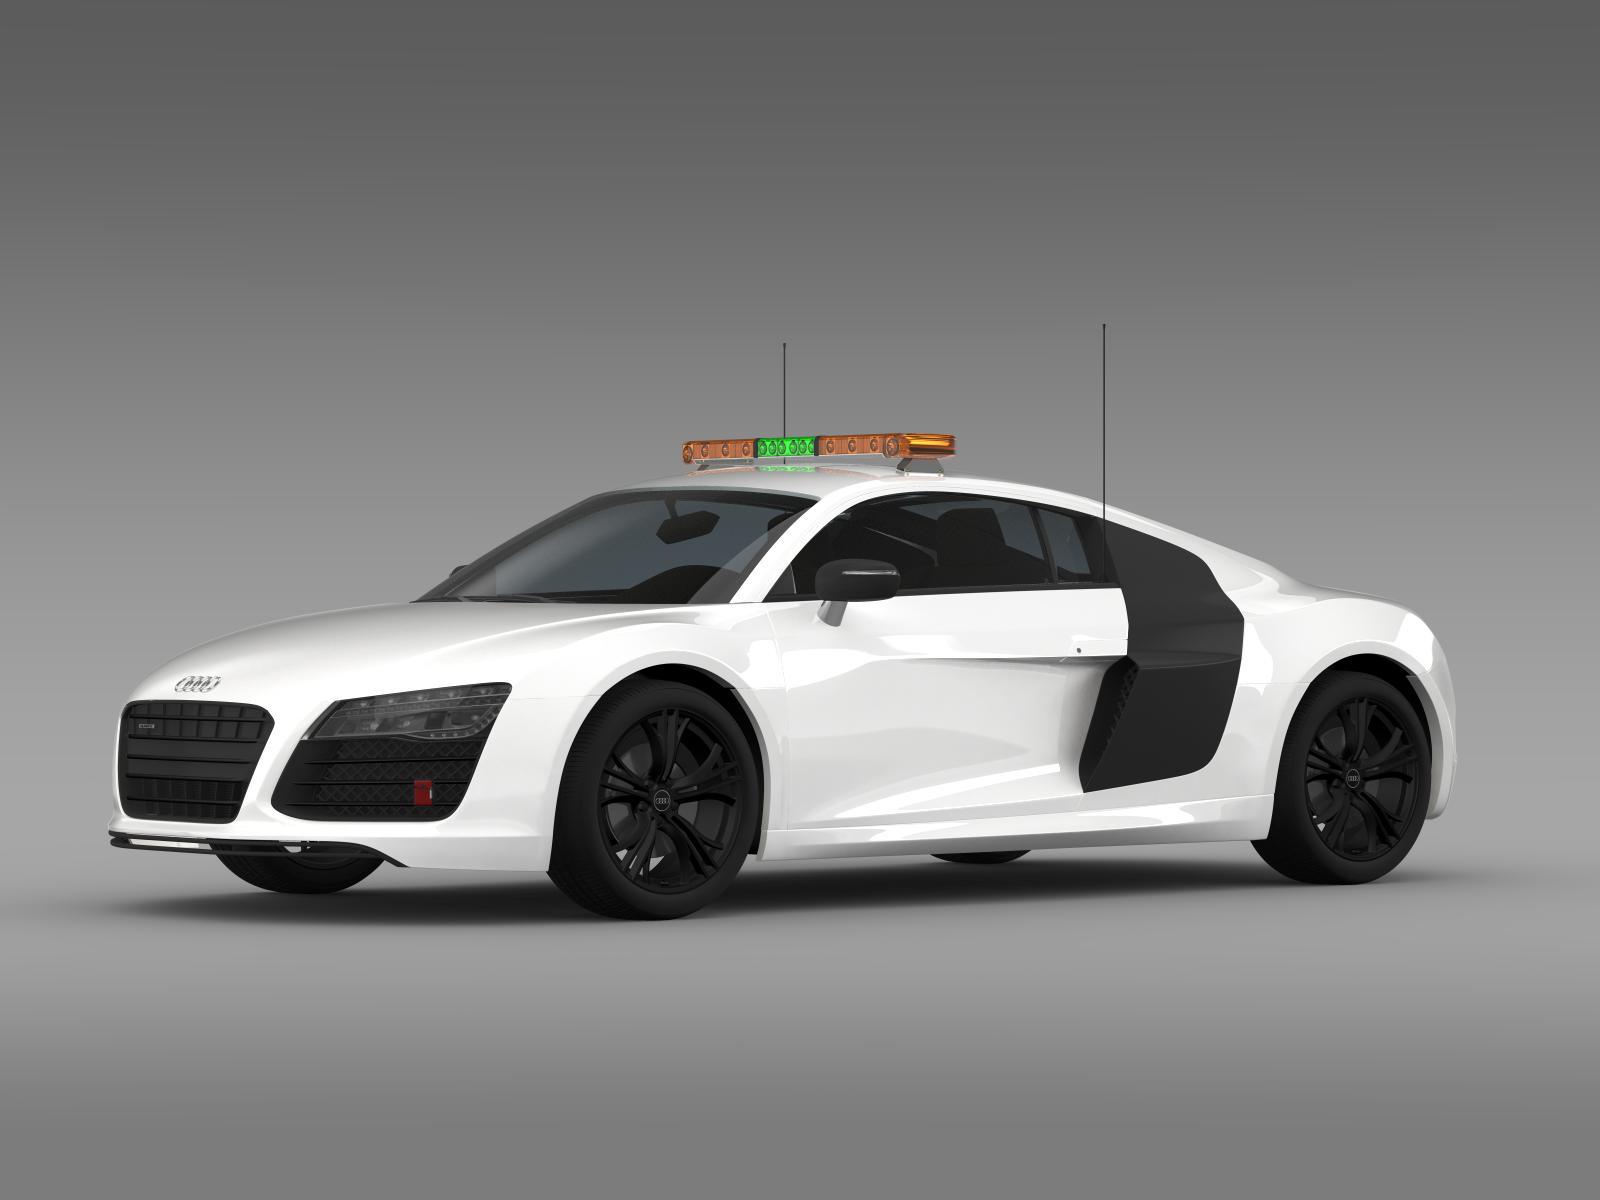 audi r8 v10plus safety car 3d model flatpyramid. Black Bedroom Furniture Sets. Home Design Ideas